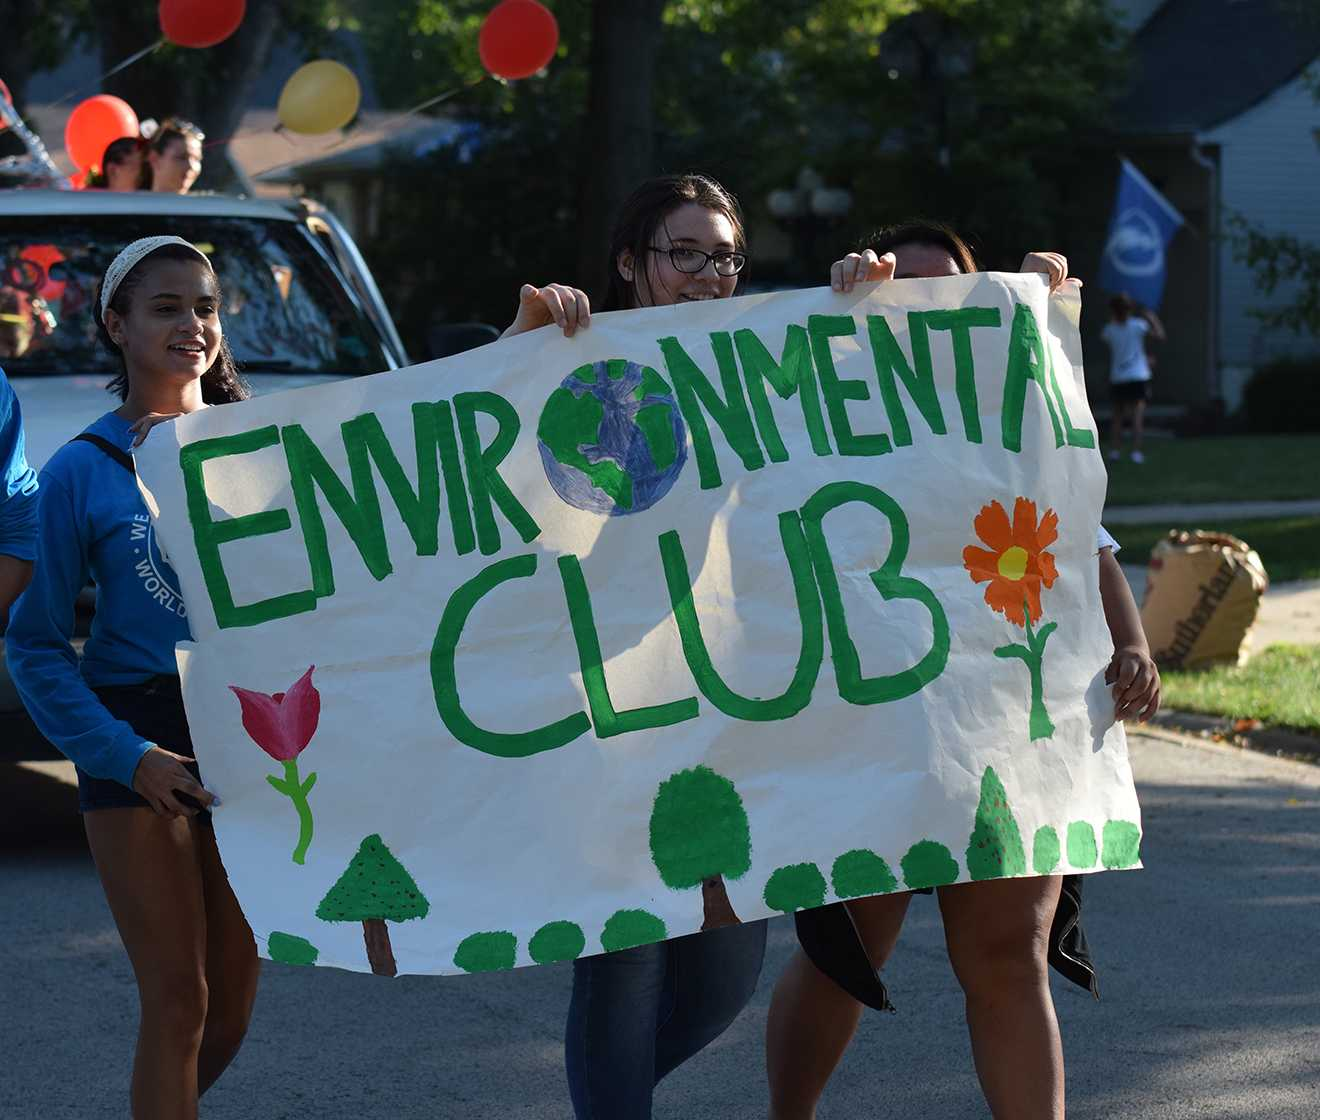 Senior Kaitlyn Minet and junior Kamilah Thomas-Walter in the homecoming parade on Sept. 23 representing the Environmental Club.